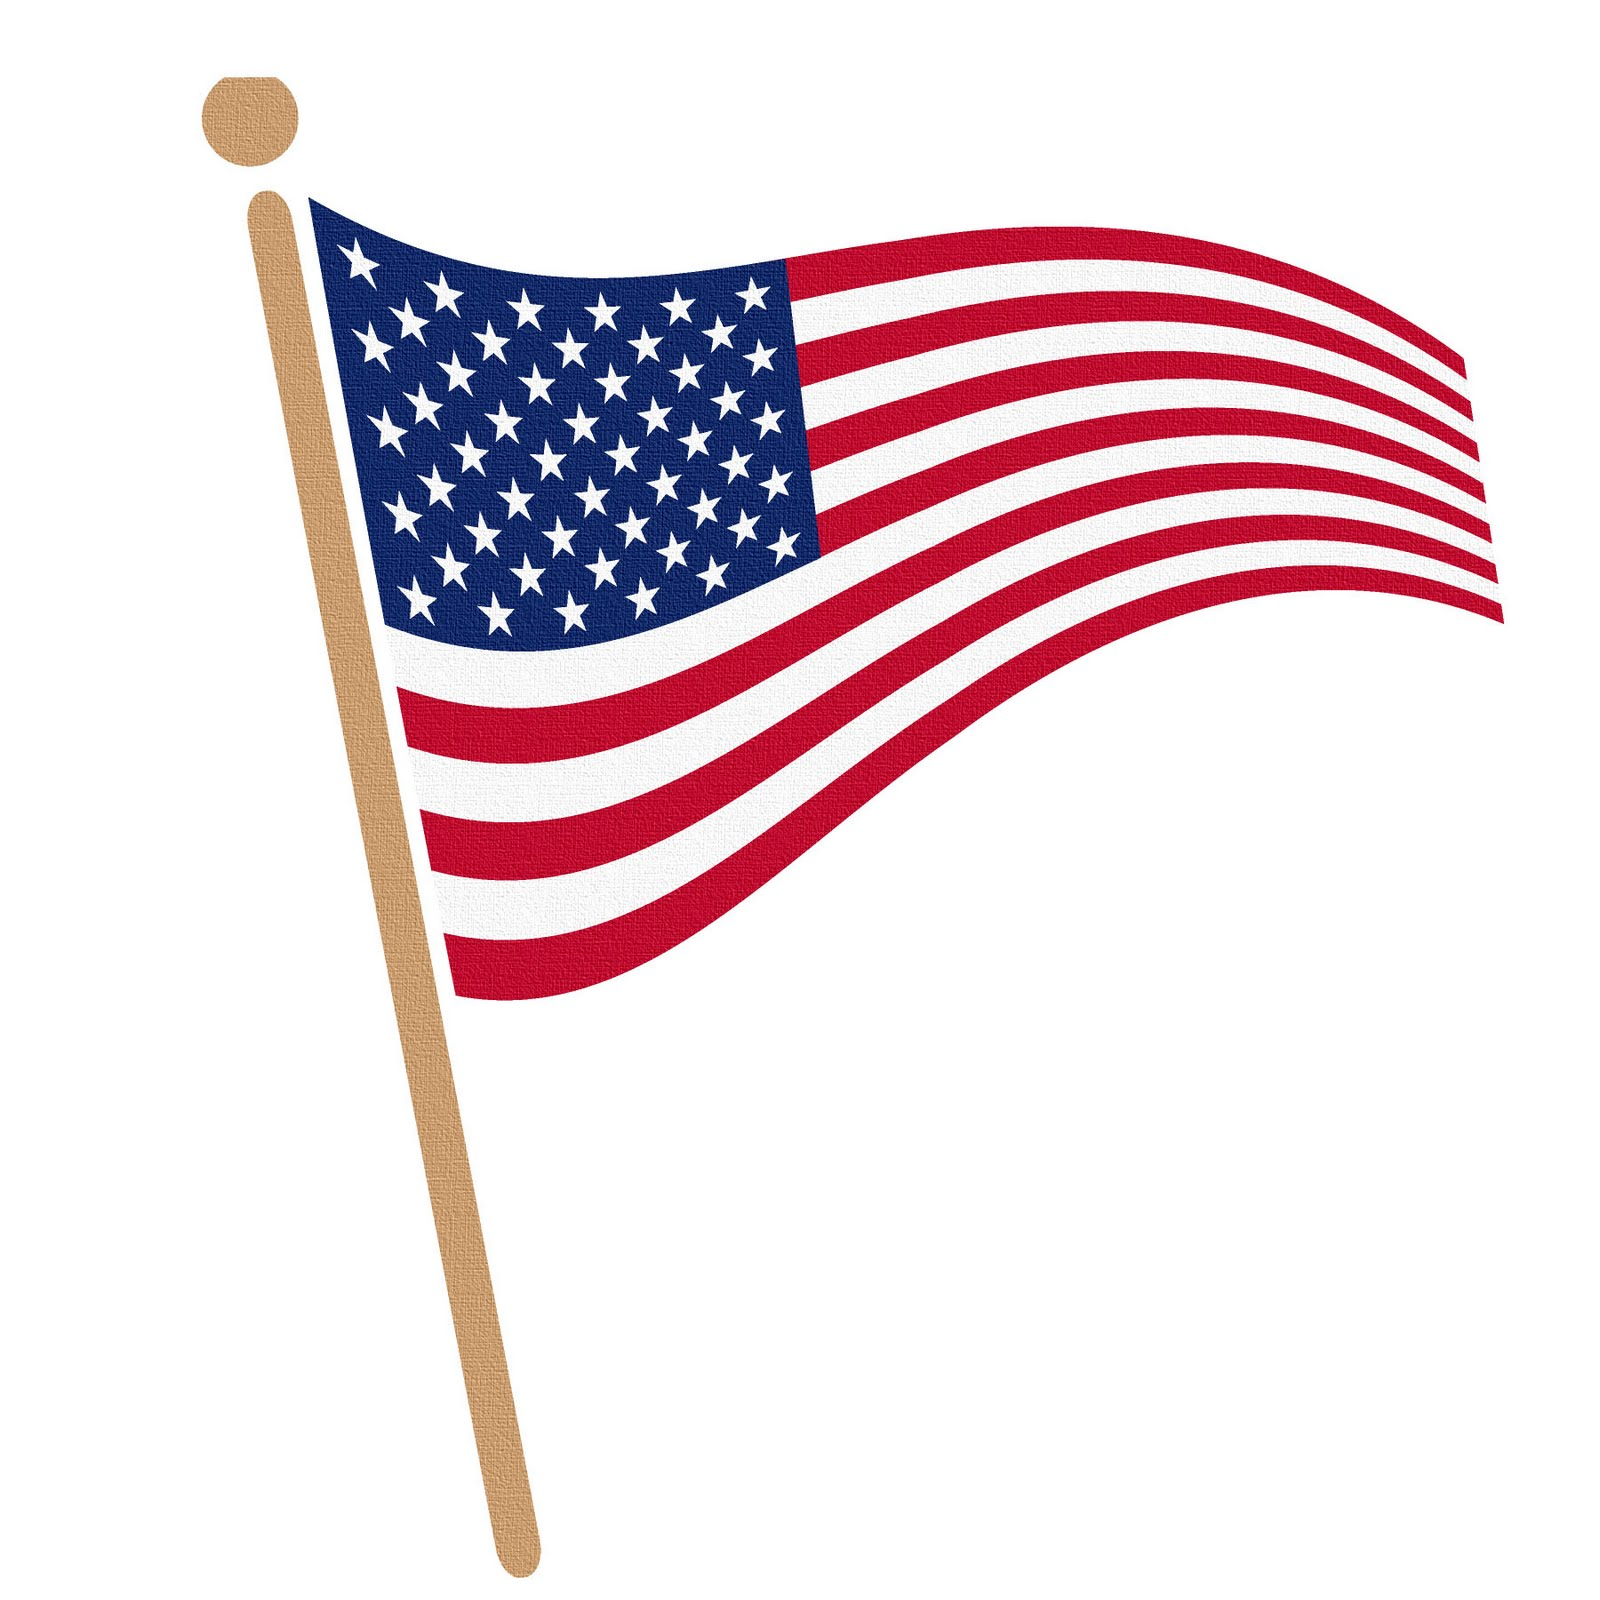 Free Flag Clipart - ClipArt Best